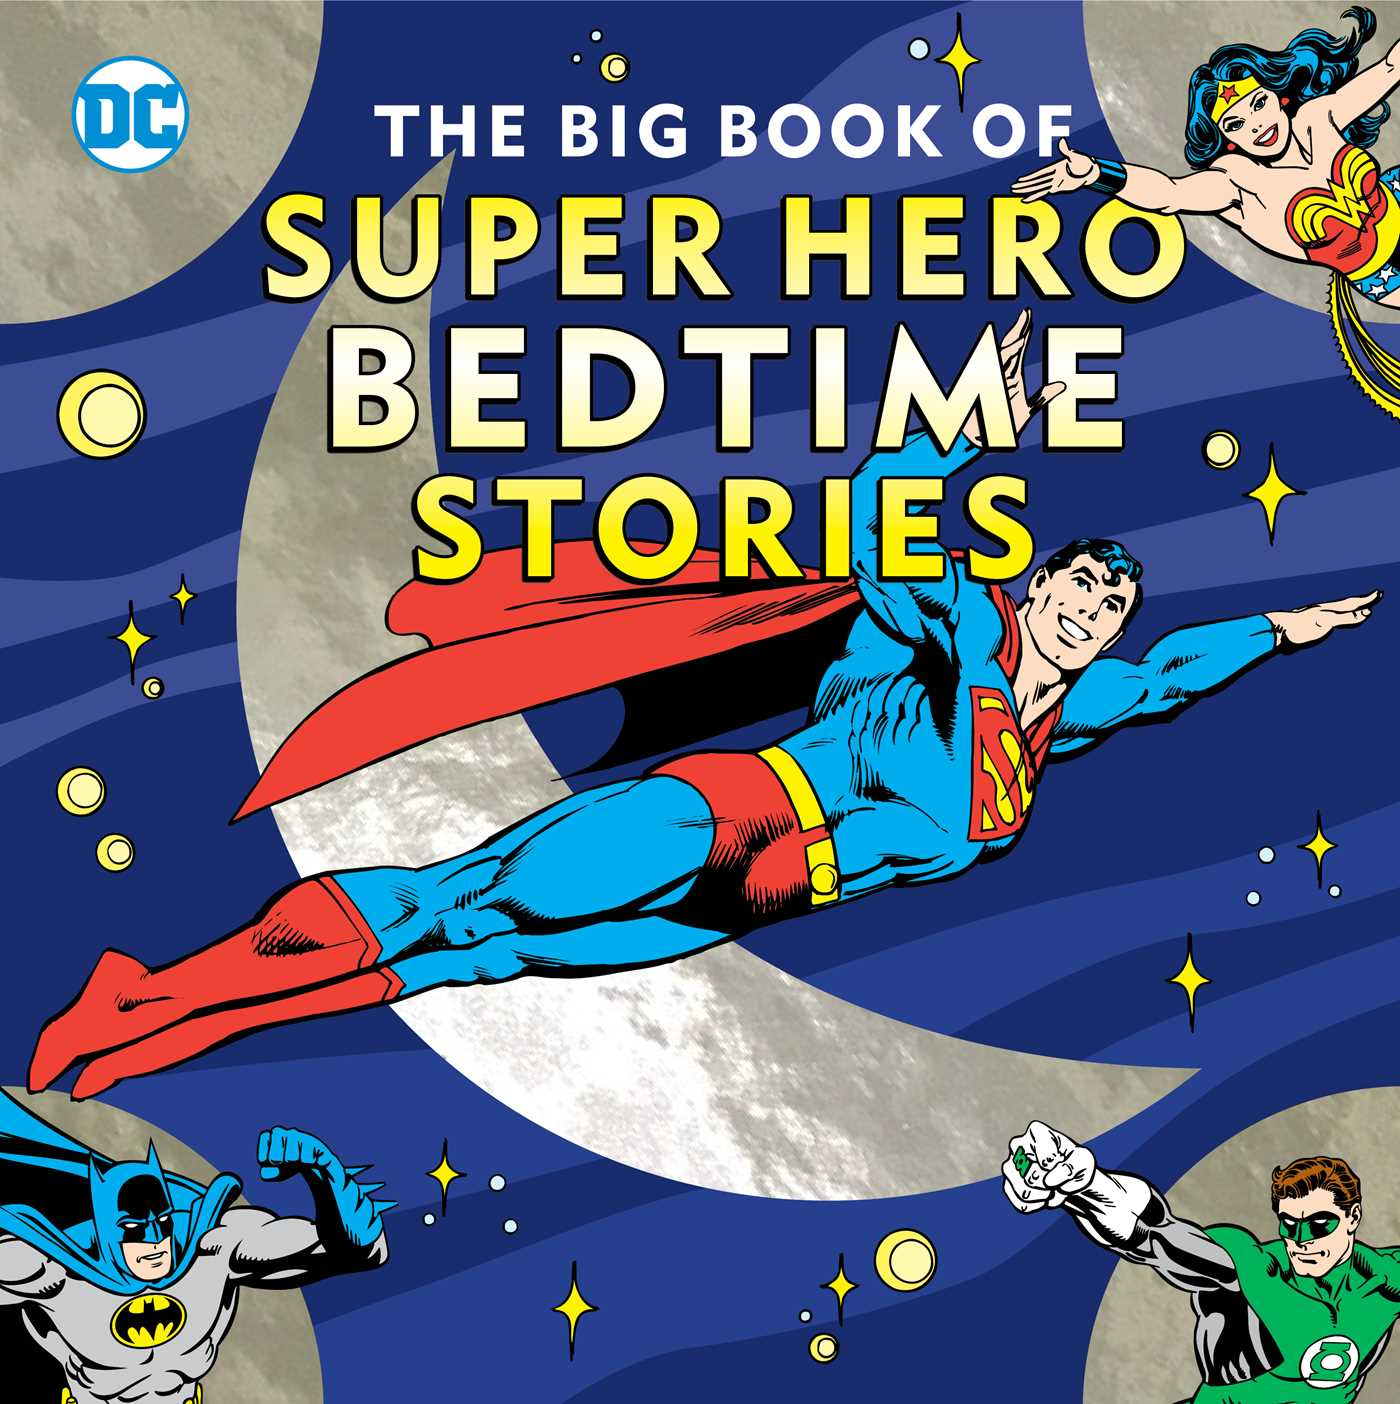 The big book of bedtime stories for super heroes 9781941367568 hr